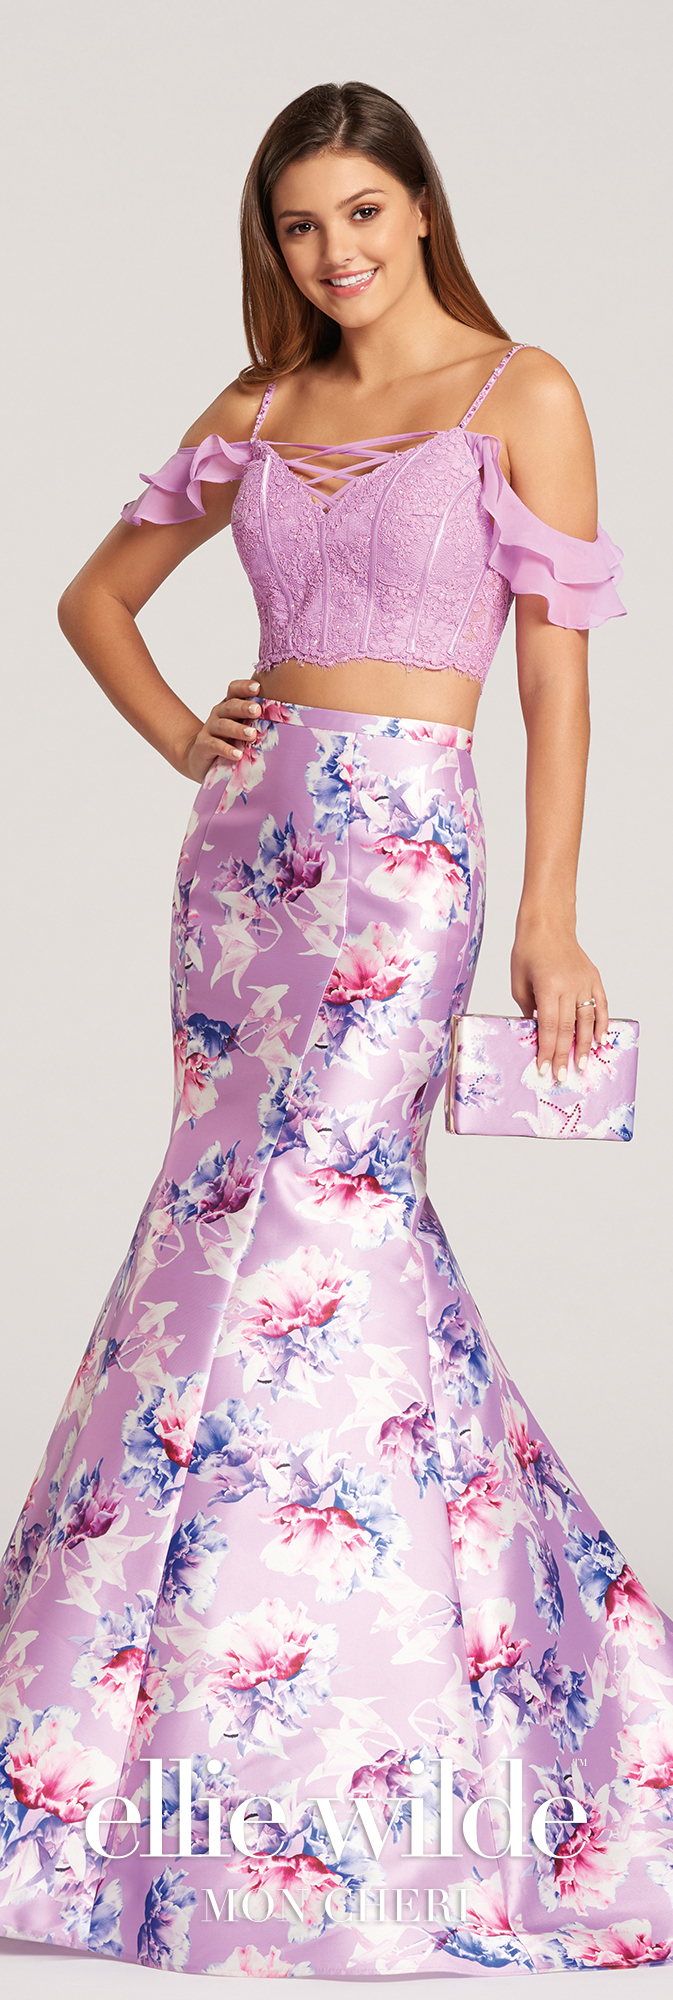 Two-Piece Off-the-Shoulder Floral Trumpet Prom Dress- EW118179 | Reinas